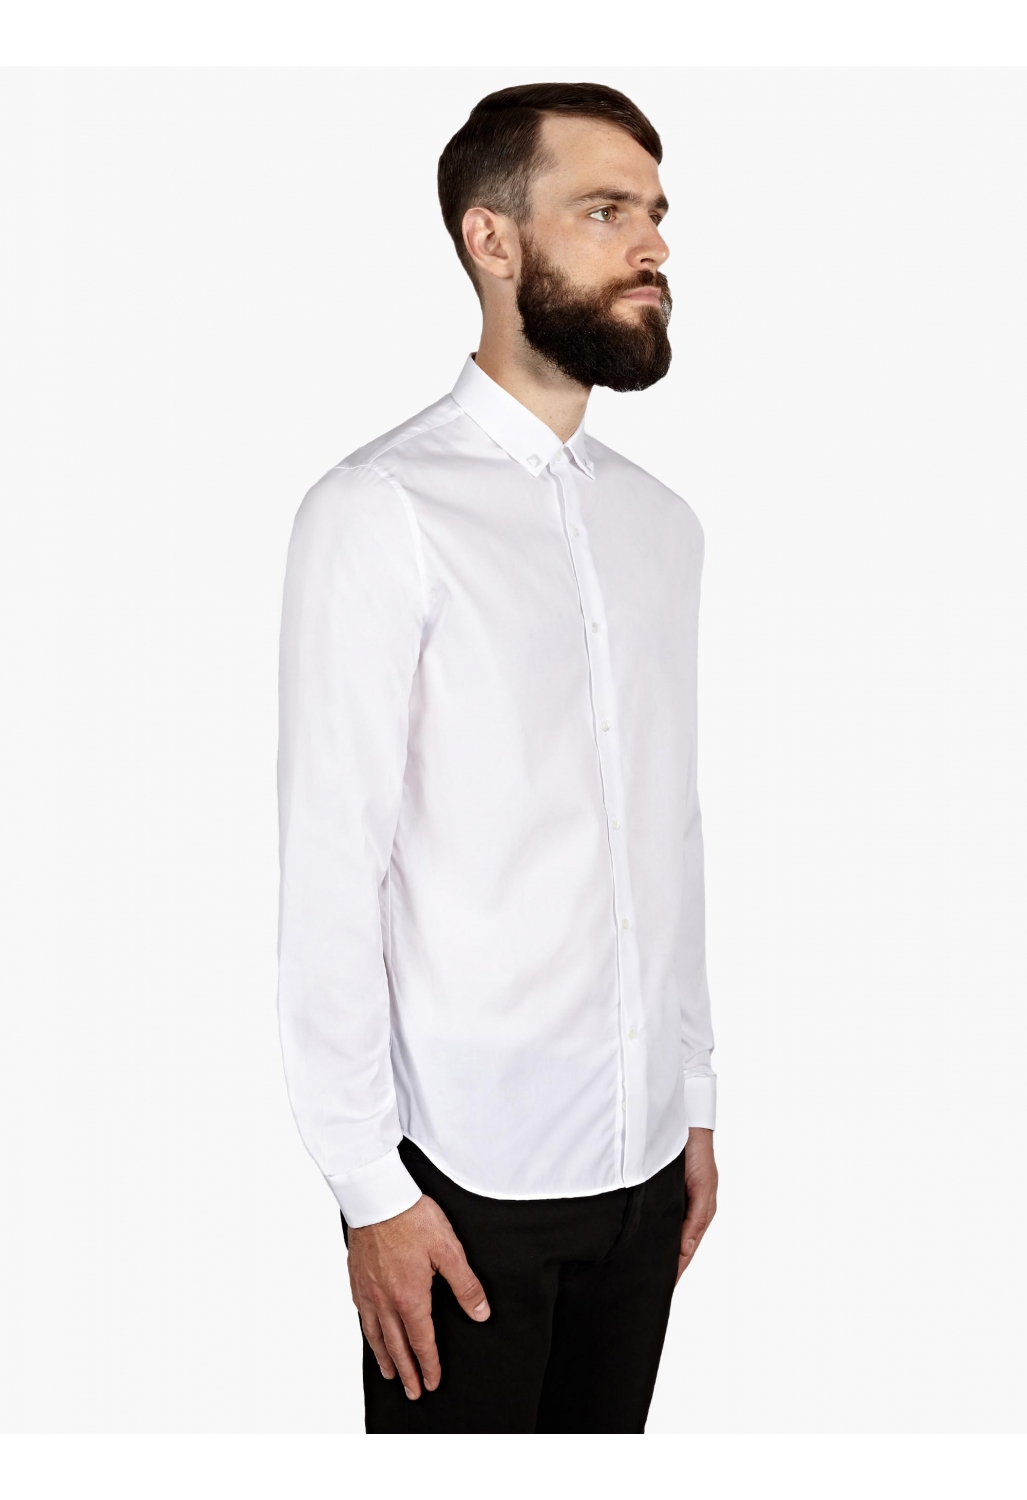 Classic White Shirt Mens | Is Shirt